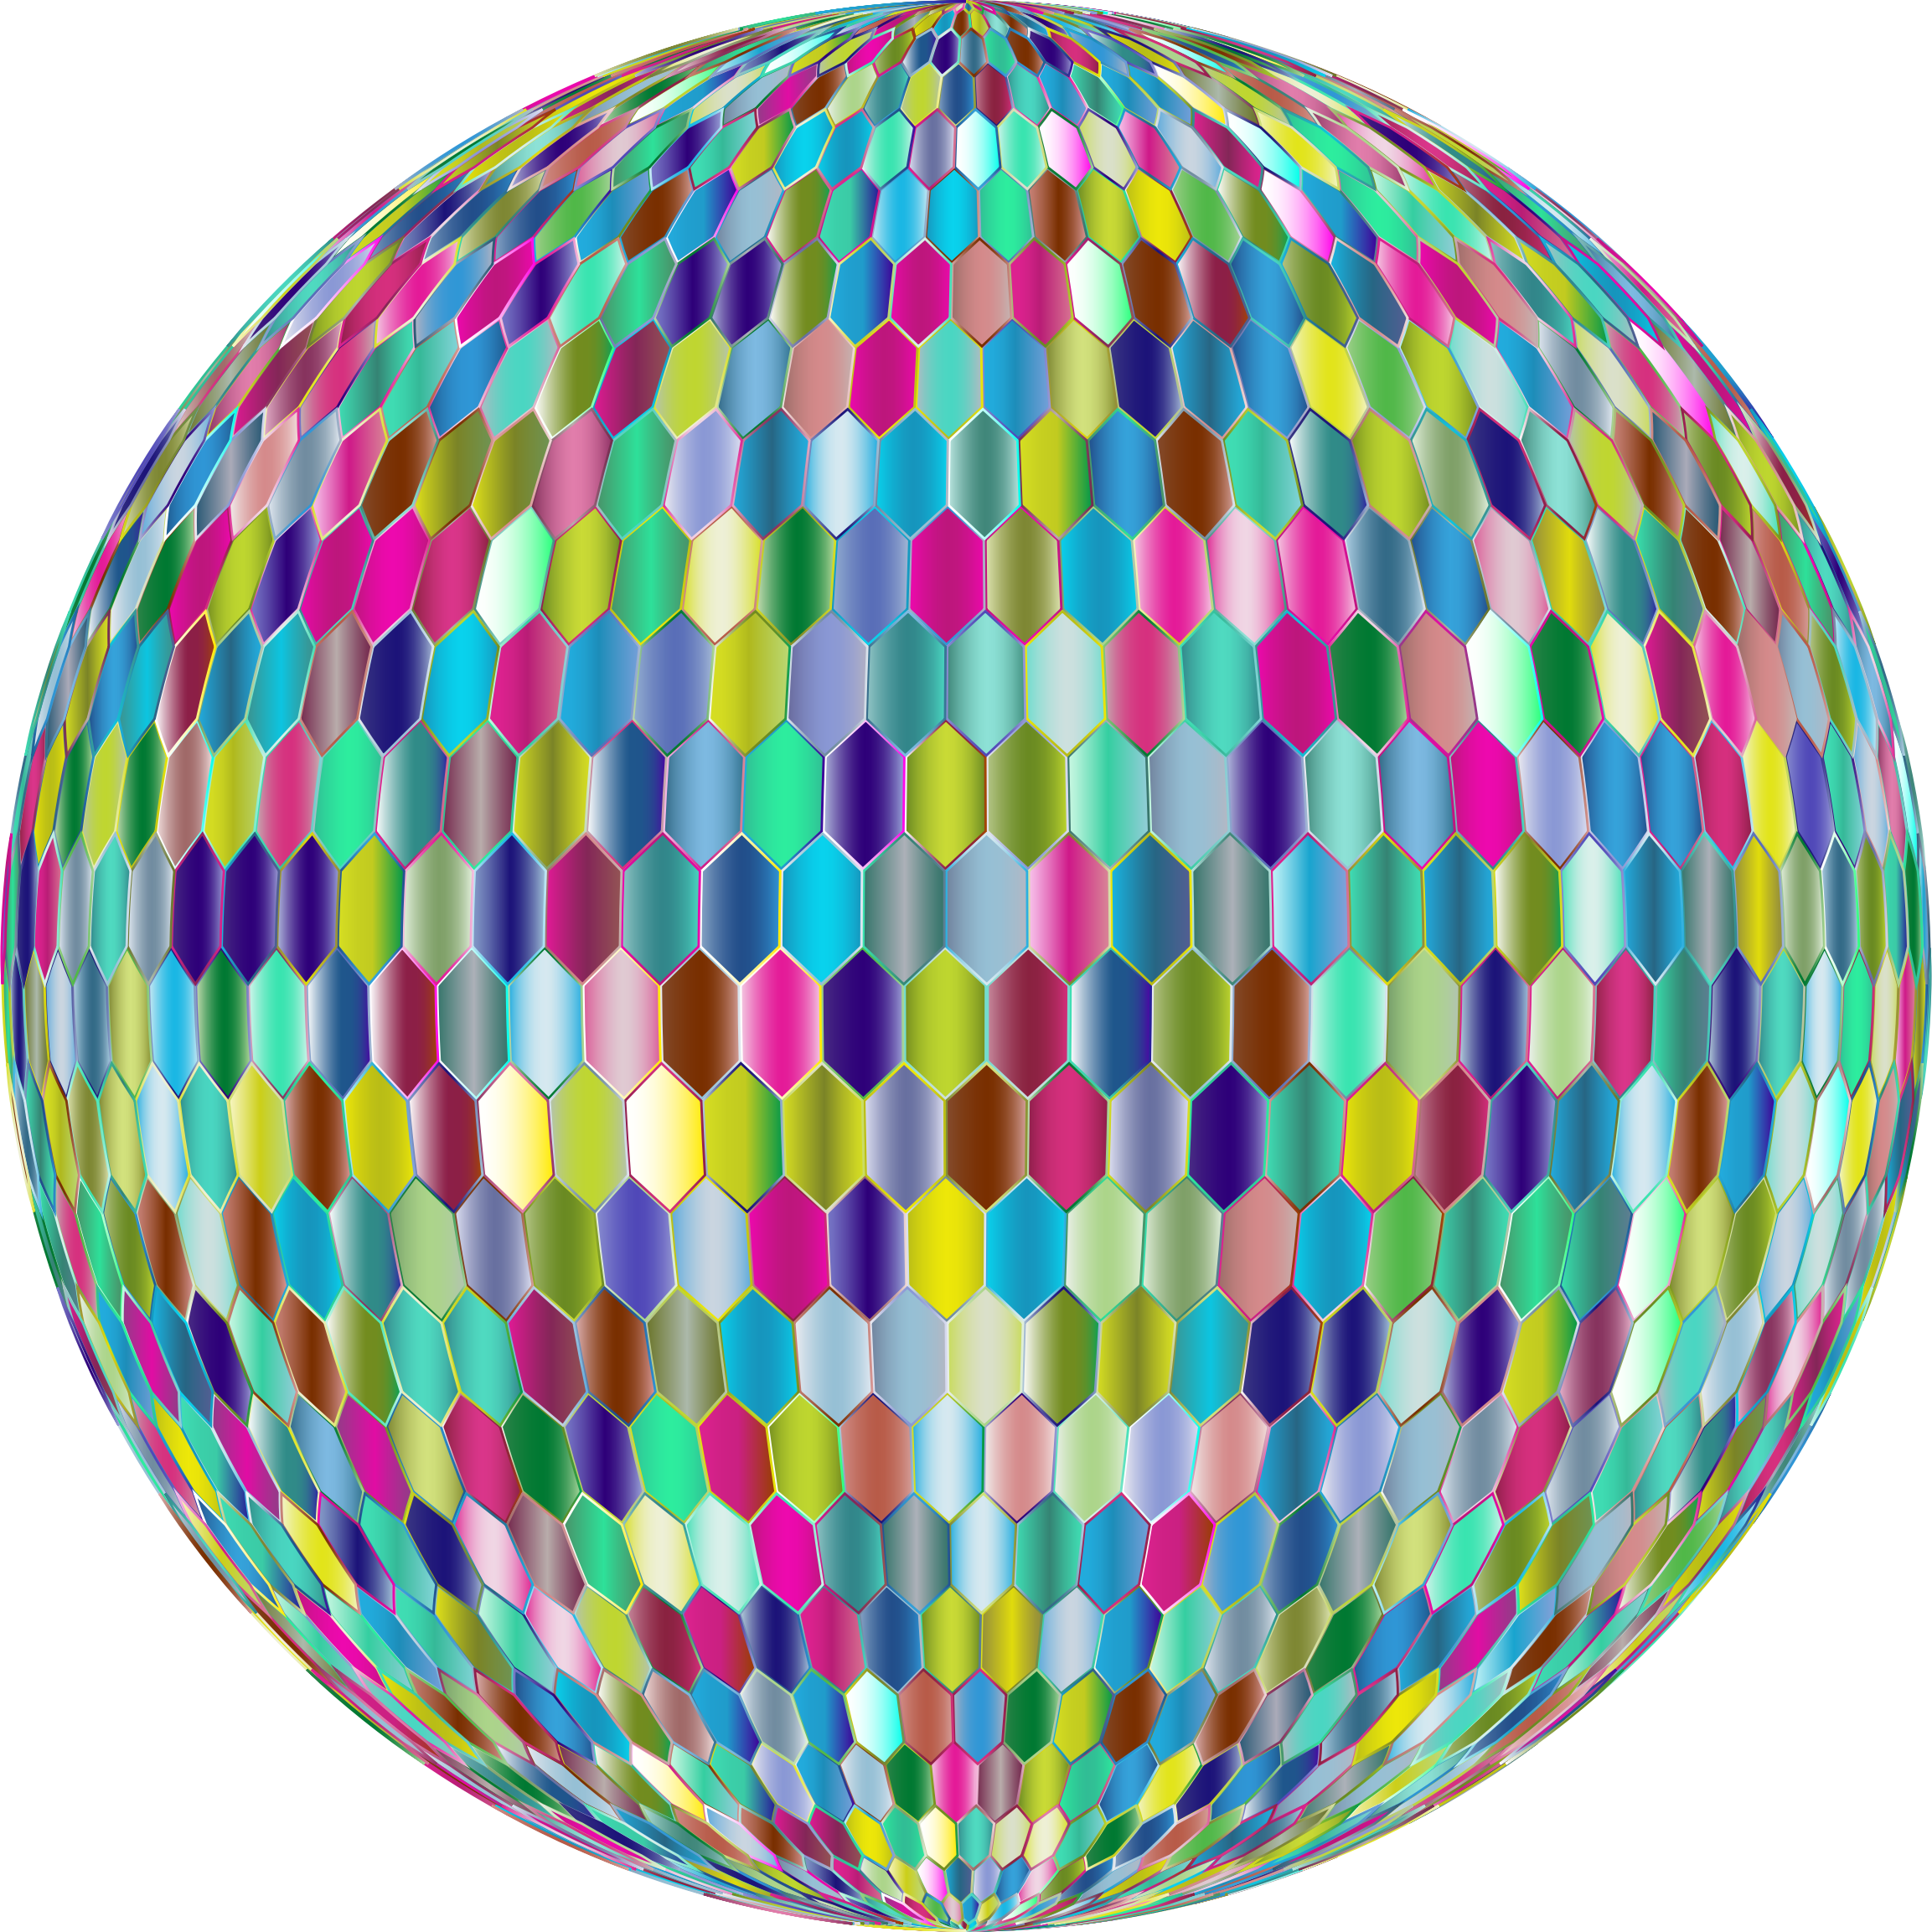 Prismatic Hexagonal Grid Sphere Variation 2 5 by GDJ